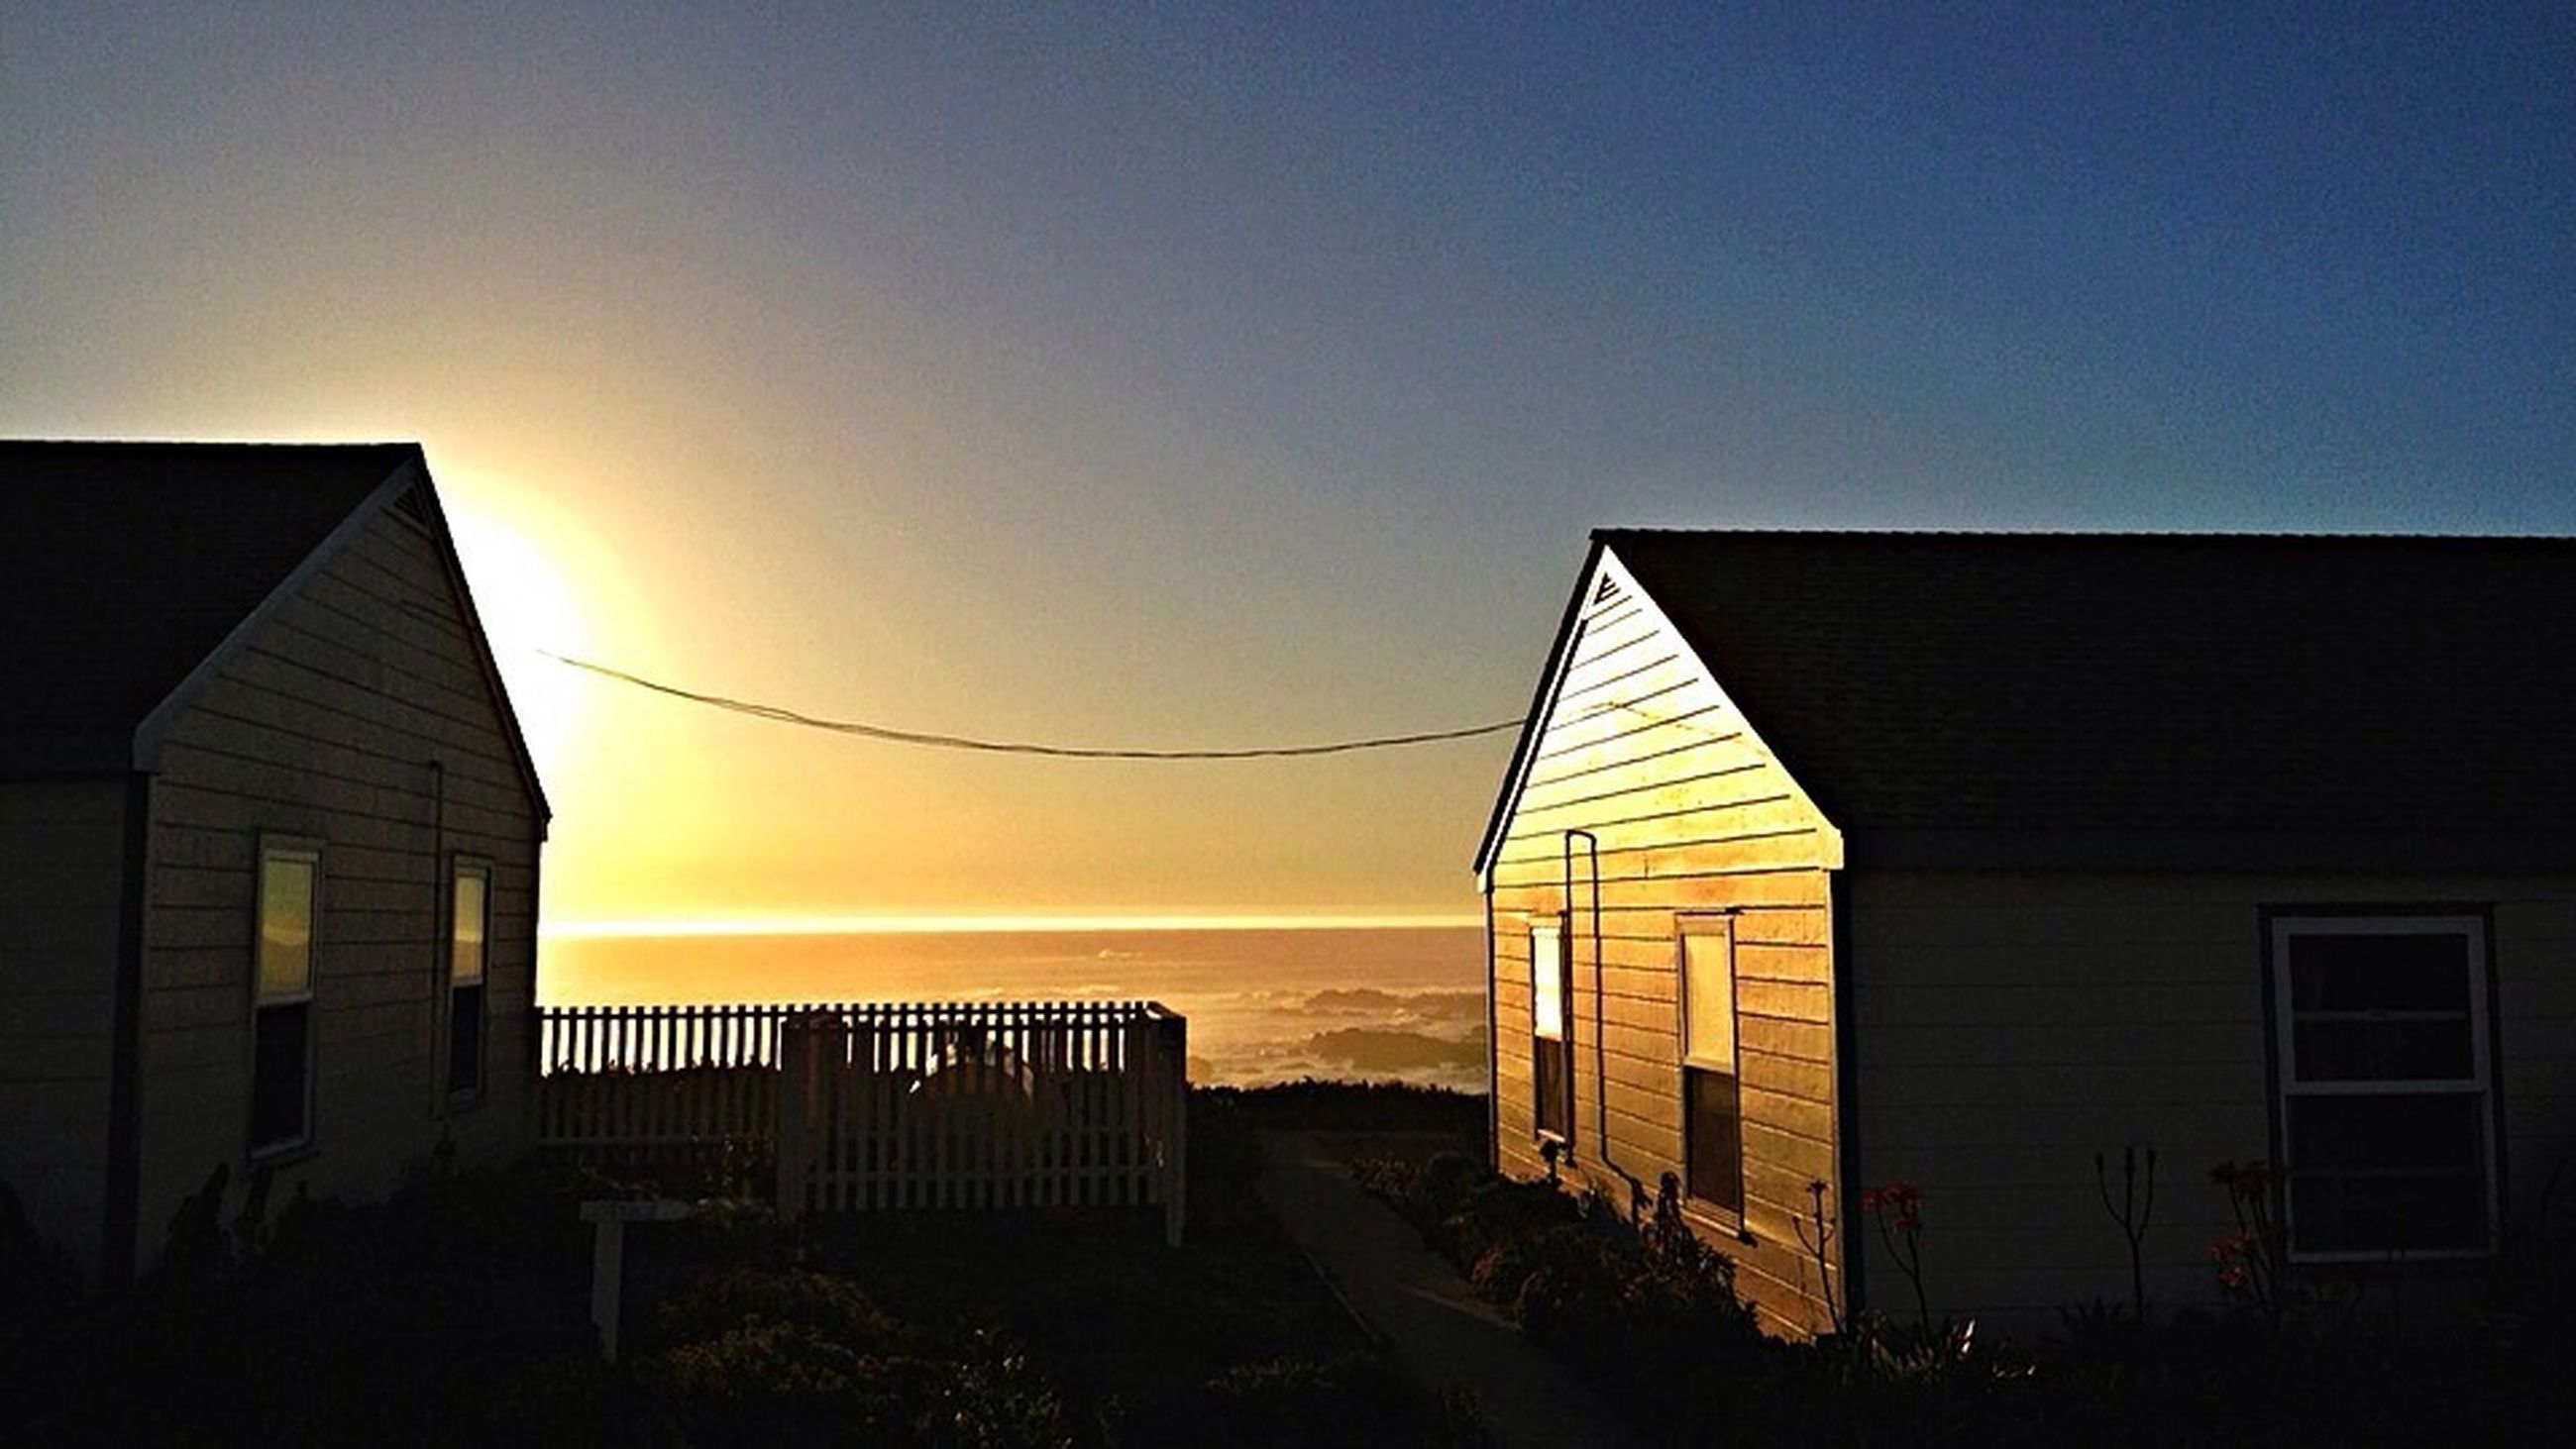 architecture, built structure, building exterior, clear sky, copy space, sunset, house, sky, blue, residential structure, beach, outdoors, building, horizon over water, no people, window, sunlight, sea, residential building, yellow